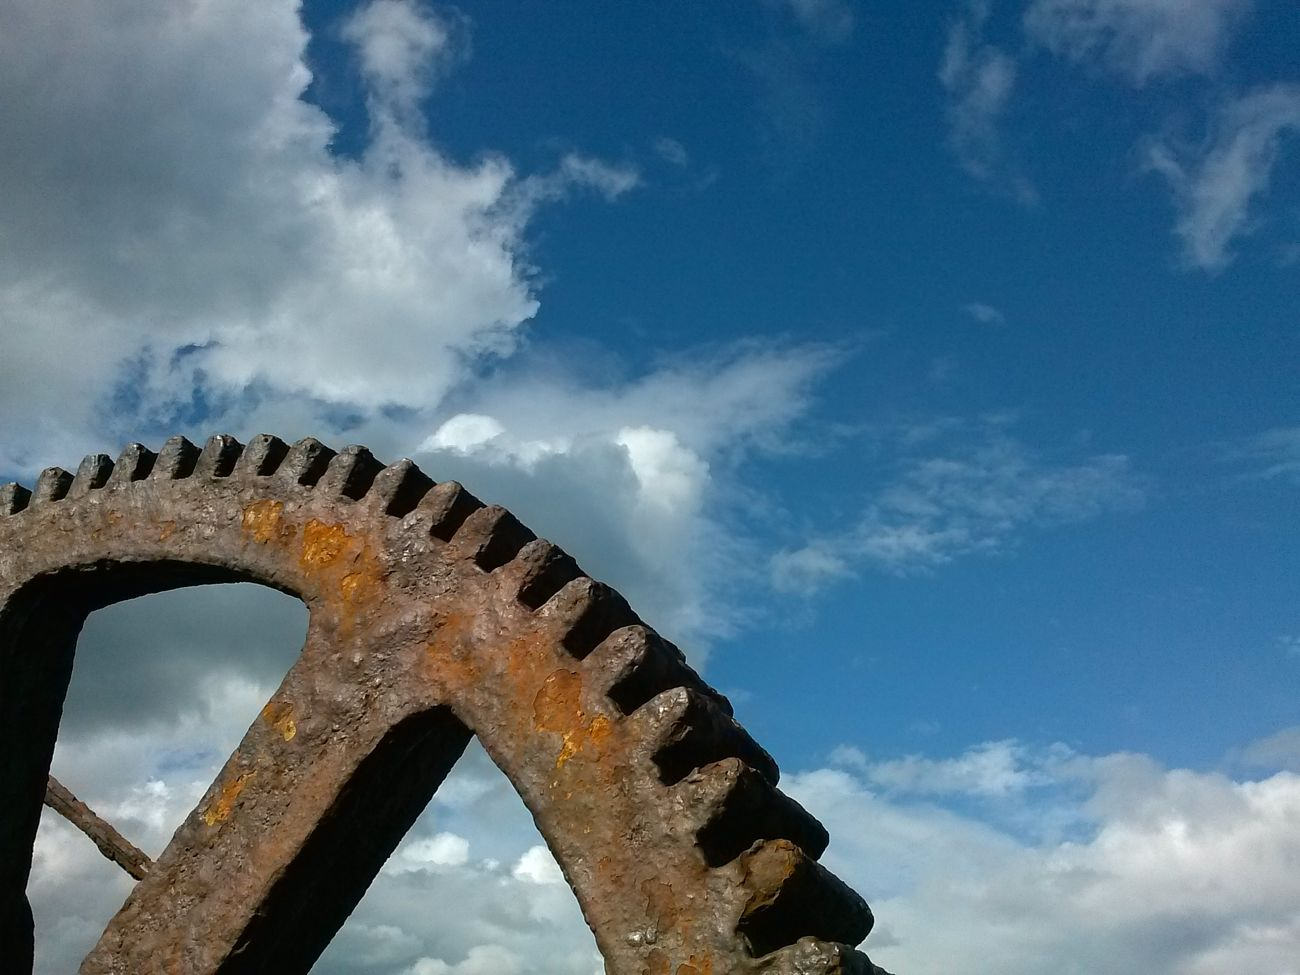 Outdoors Sky Cloud - Sky Bridge - Man Made Structure High Contrast Transportation Cog Future Industry Old Gear Factory